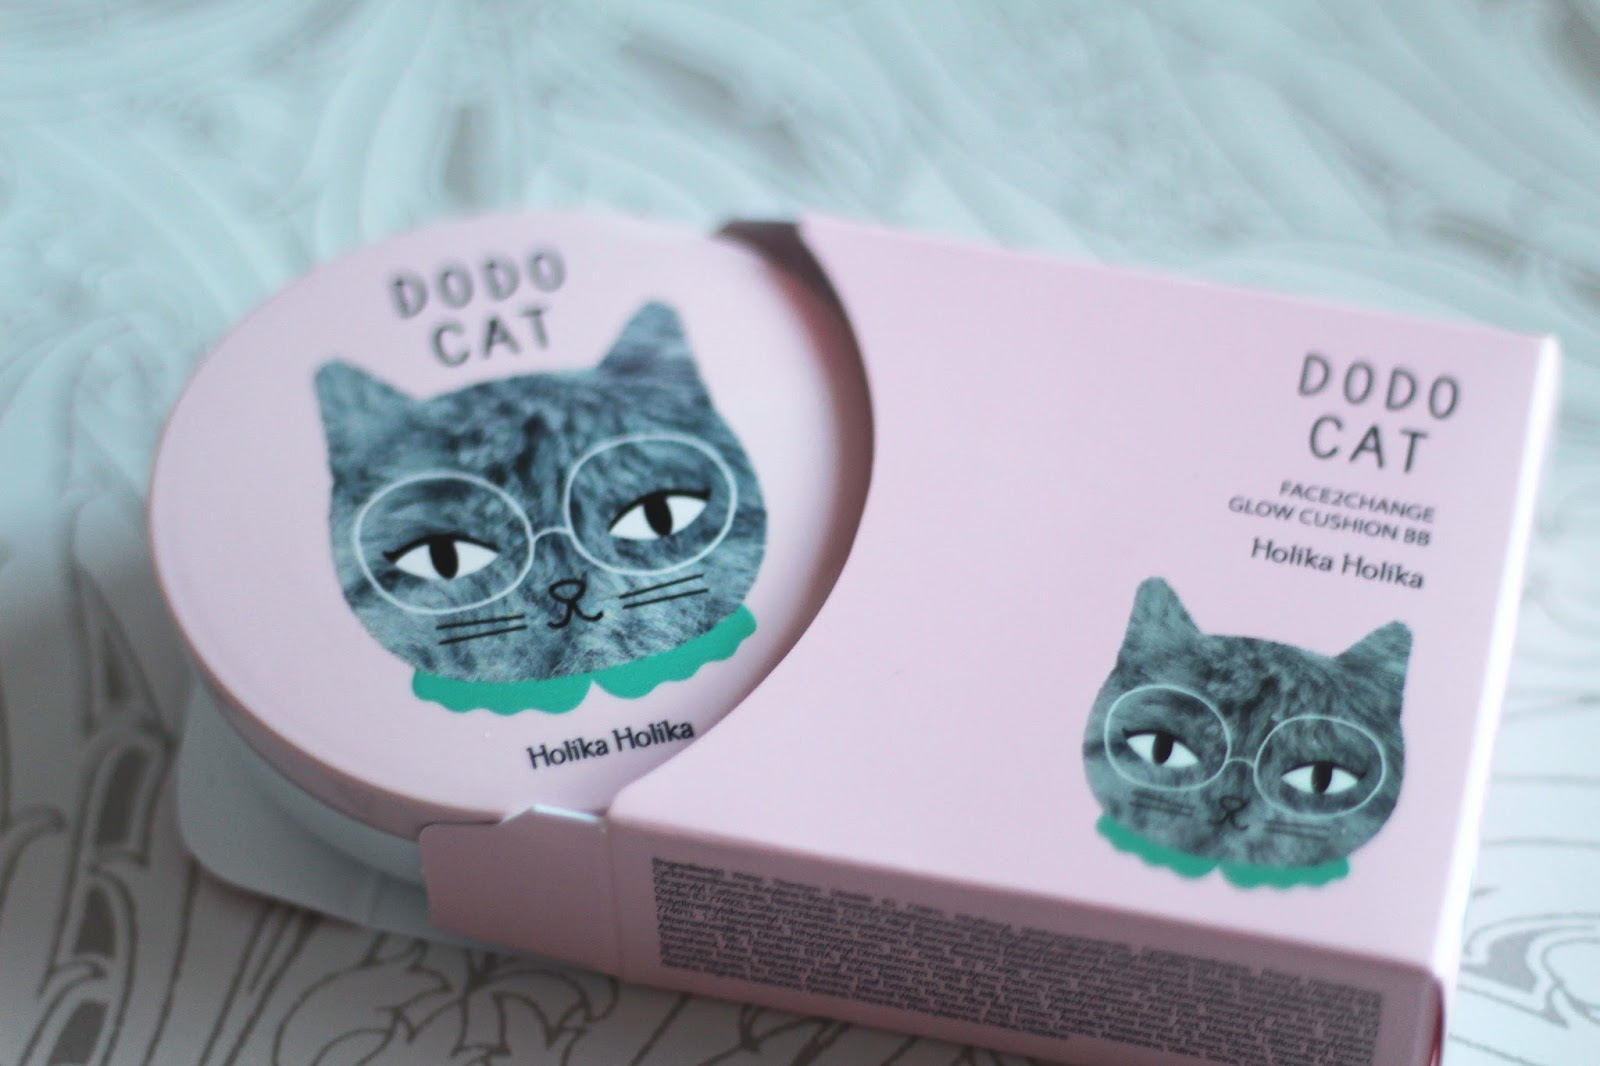 holika holika face2change dodocat glow cushion bb review compact and box